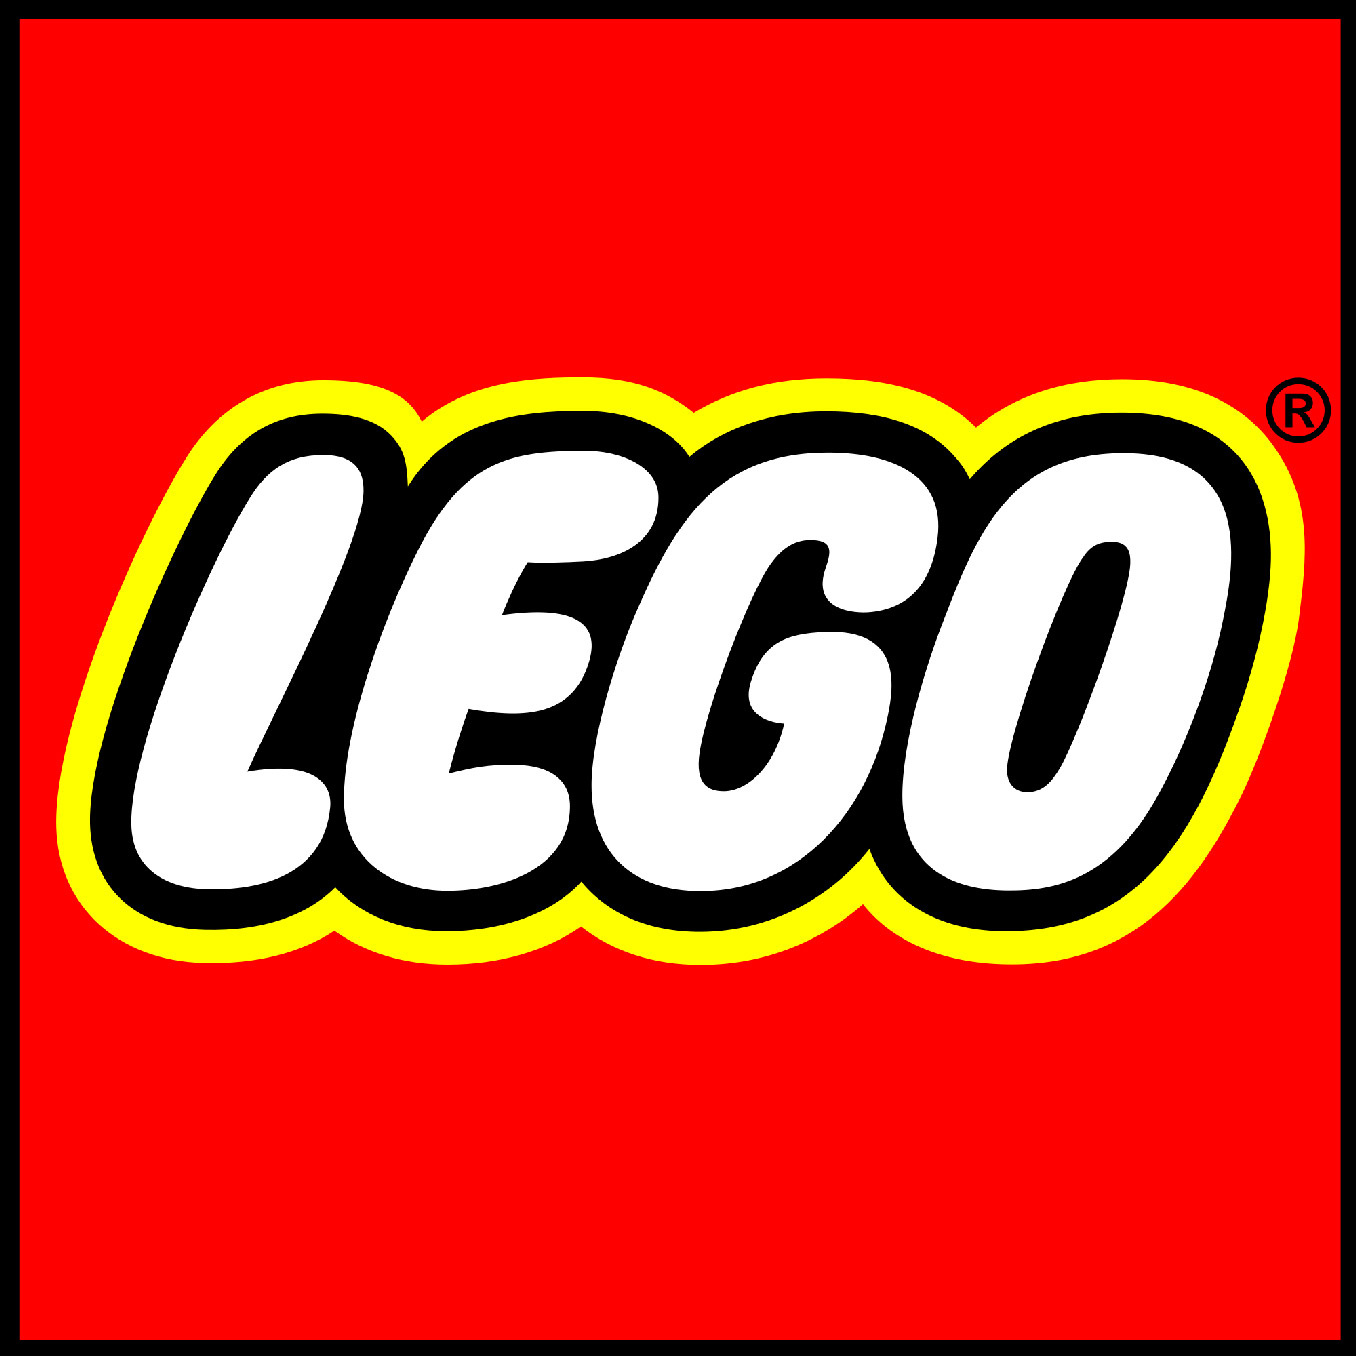 Lego is Working With Sony to Compete With the Growing Games Industry